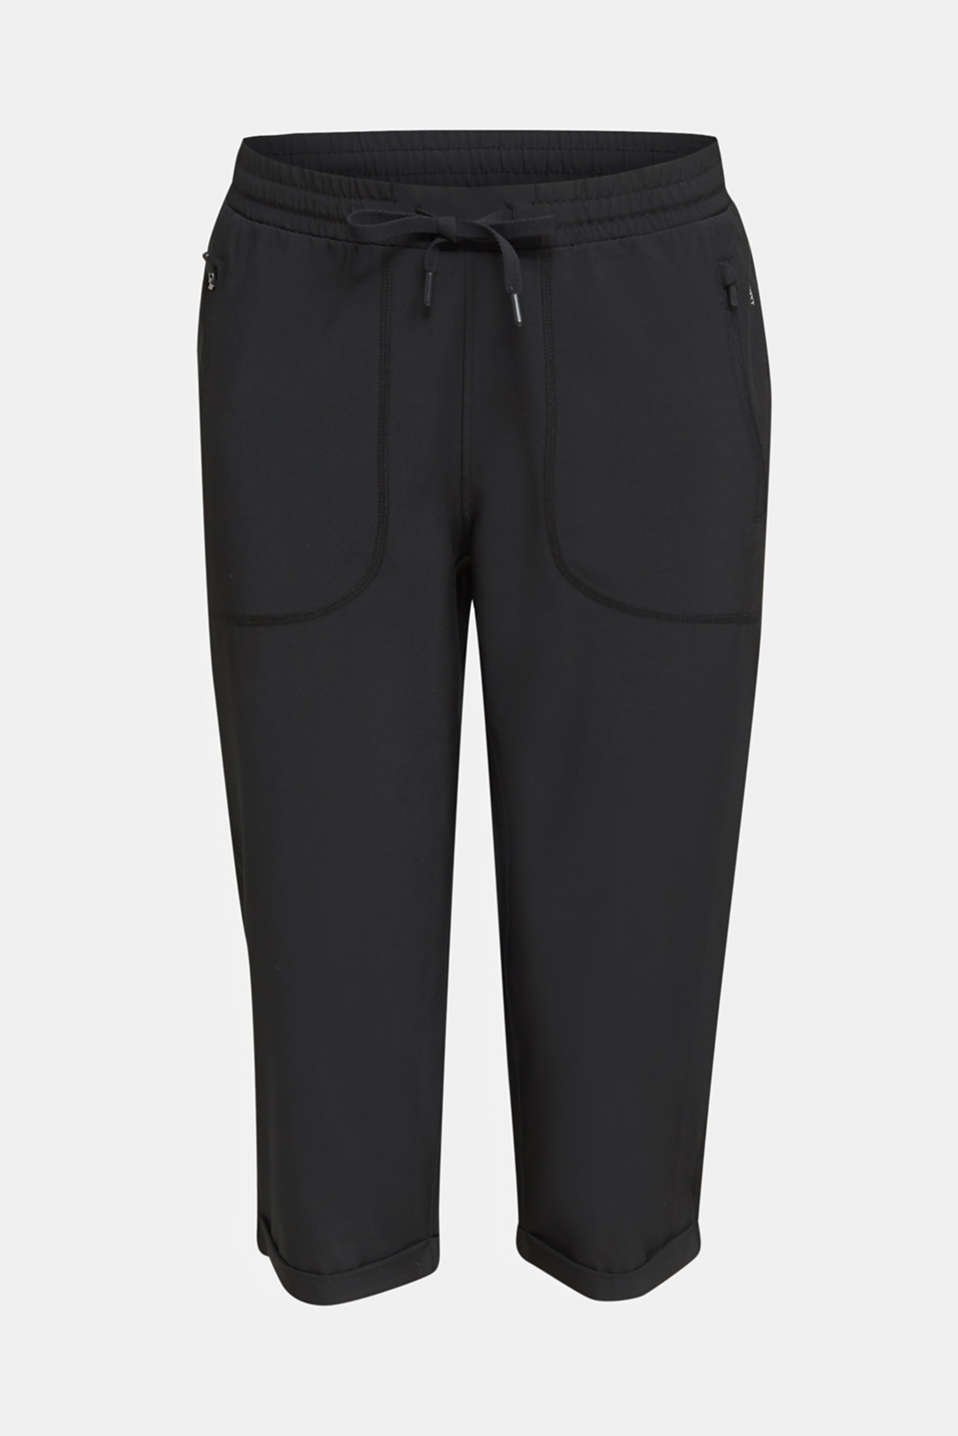 Woven capris with turned-up hems, edry, BLACK, detail image number 4